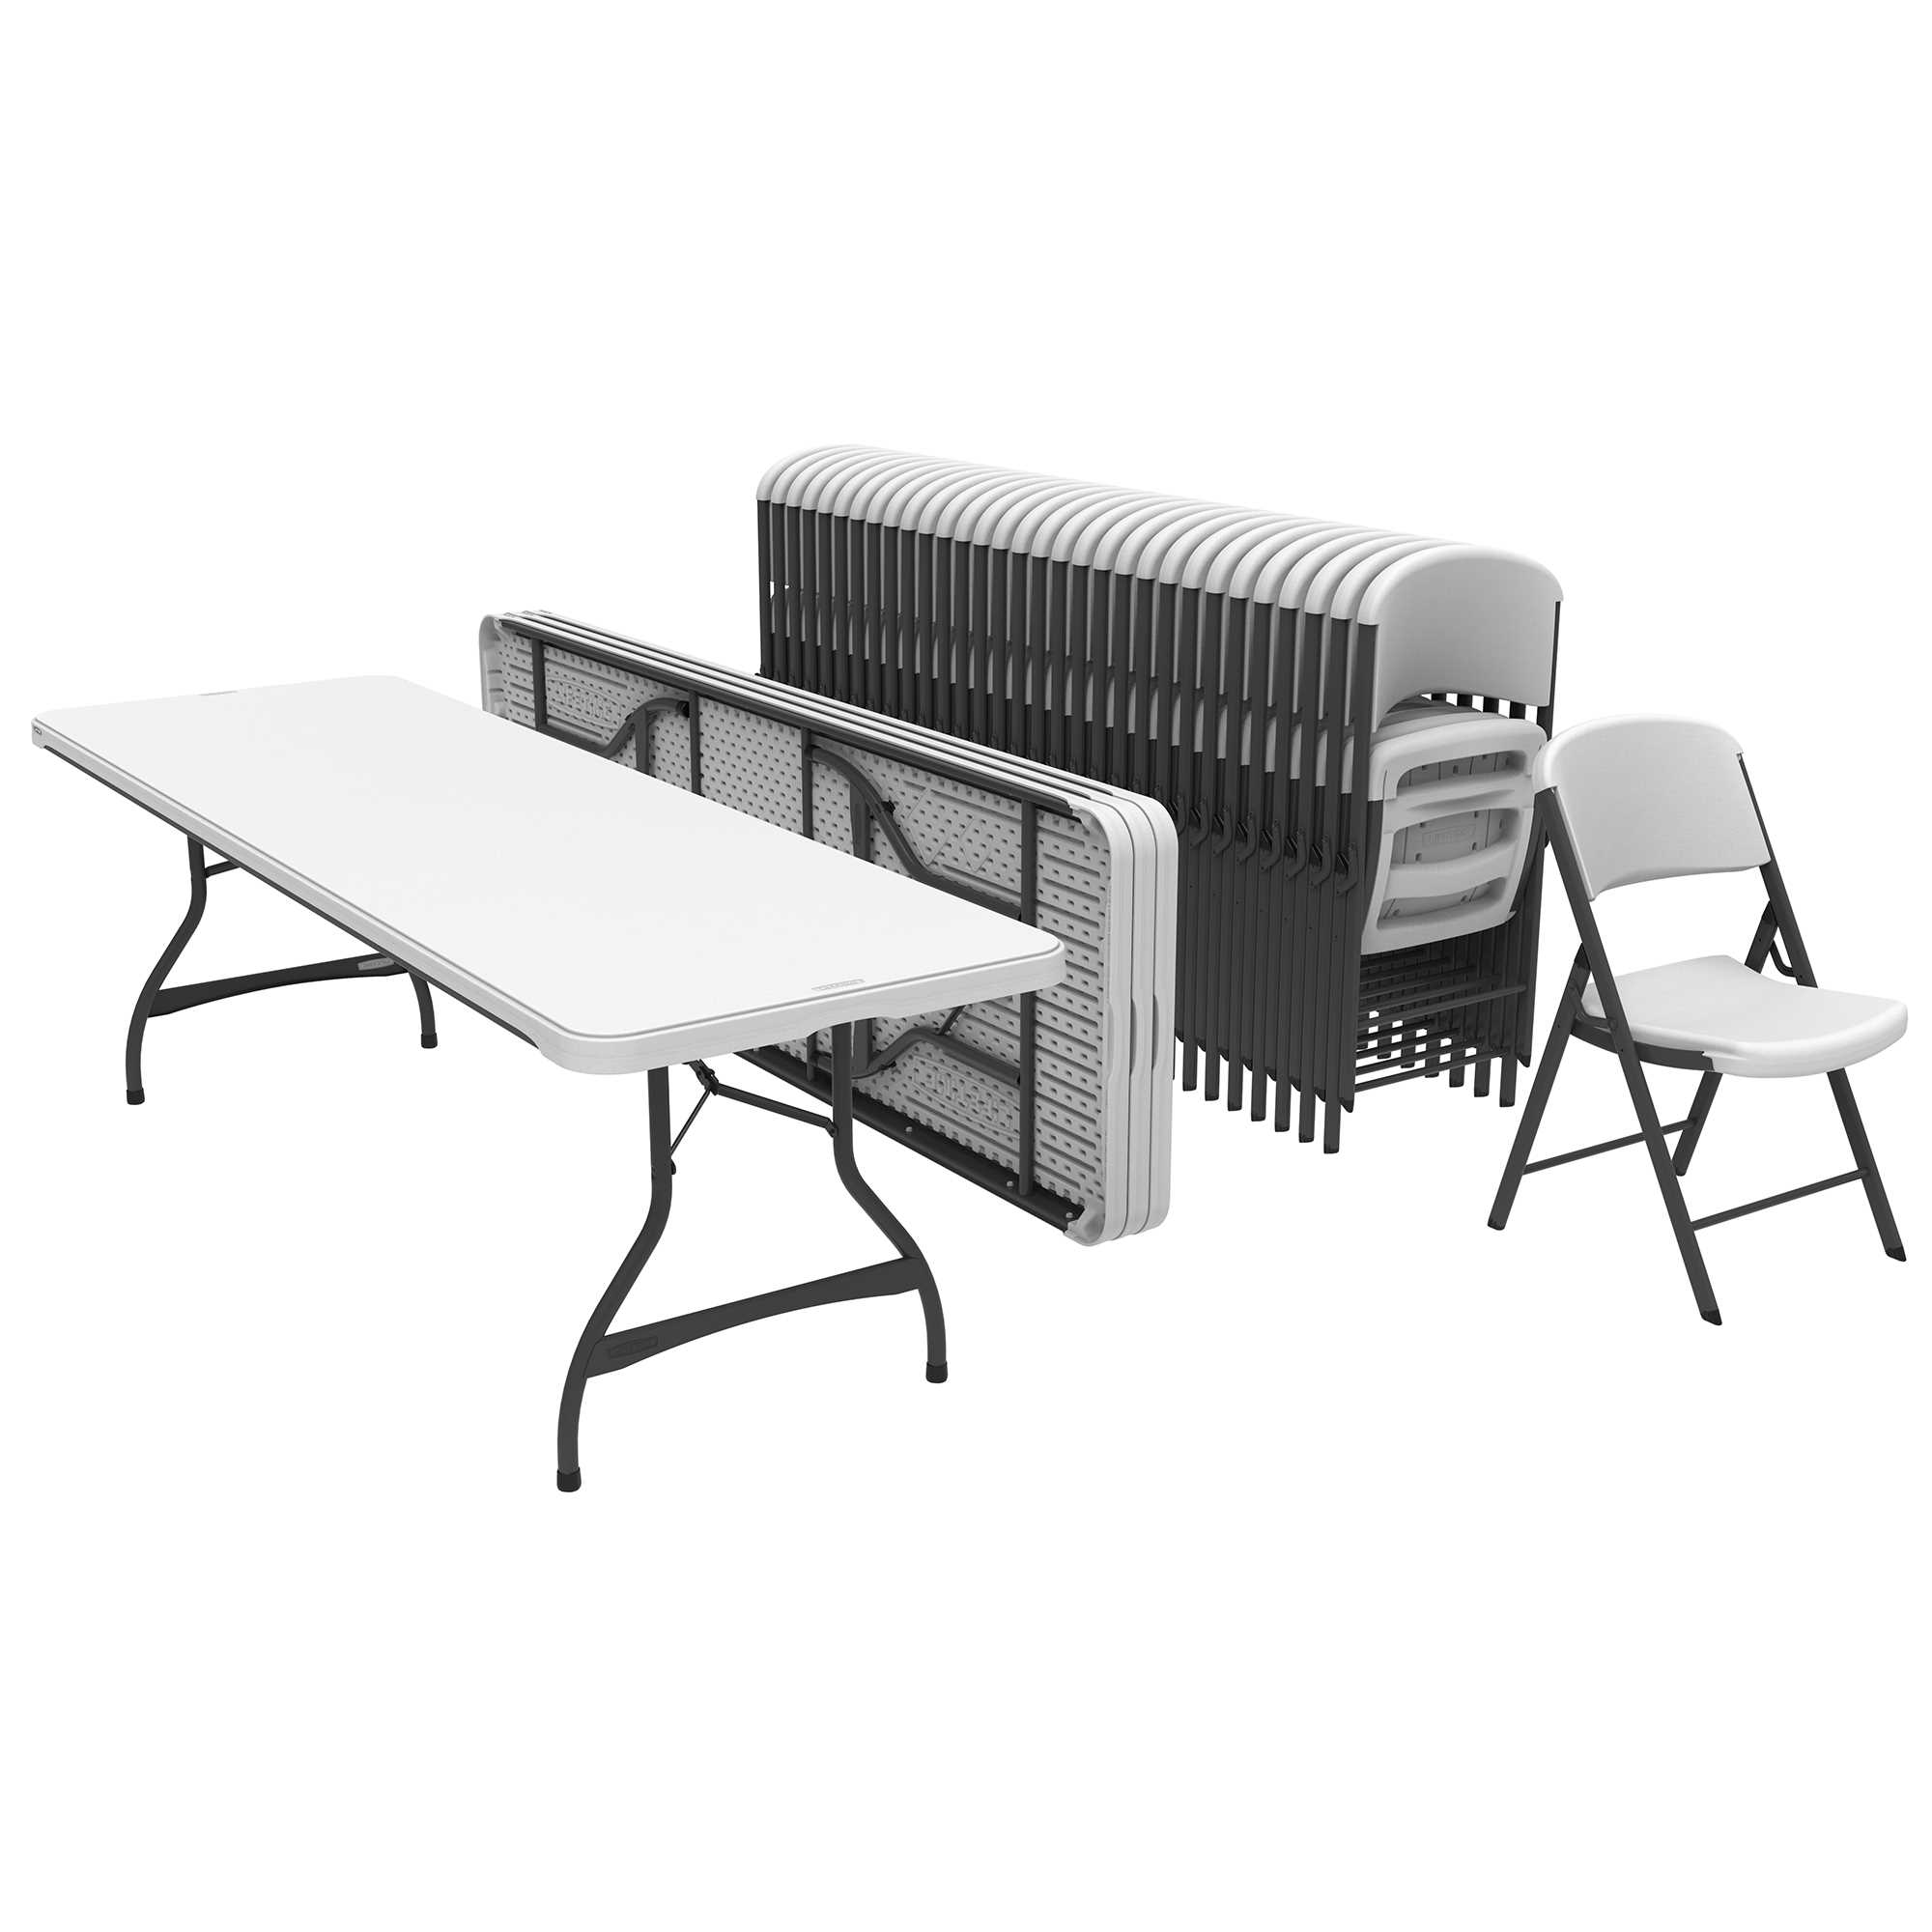 Lifetime (4) 8-Foot Stacking Tables and (32) Chairs Combo (Commercial)